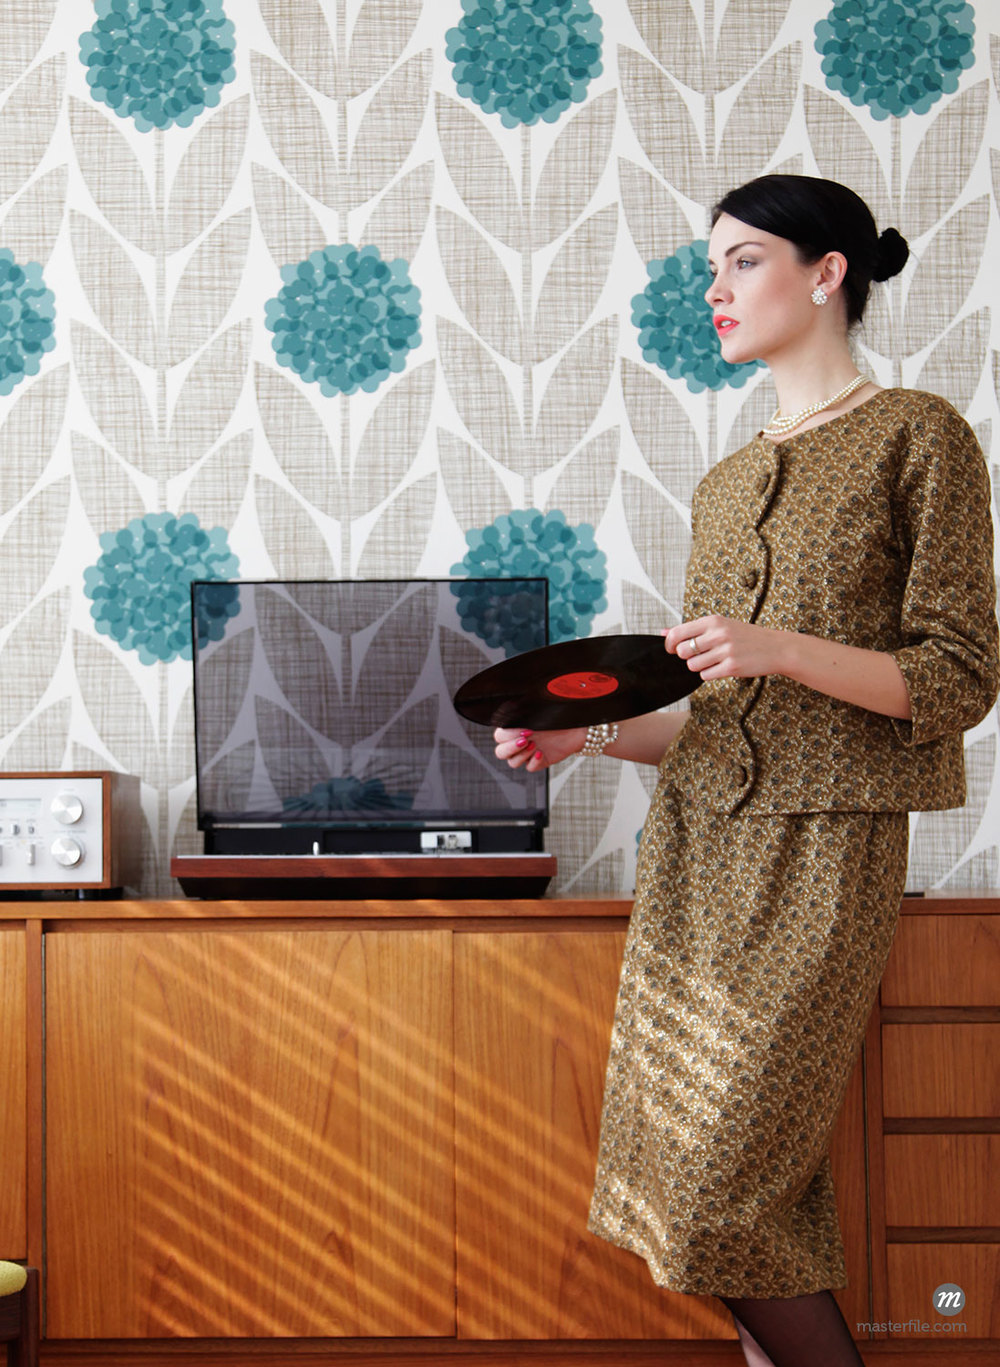 Woman in vintage dress in mid-century modern living room with vinyl record © Cultura RM / Masterfile